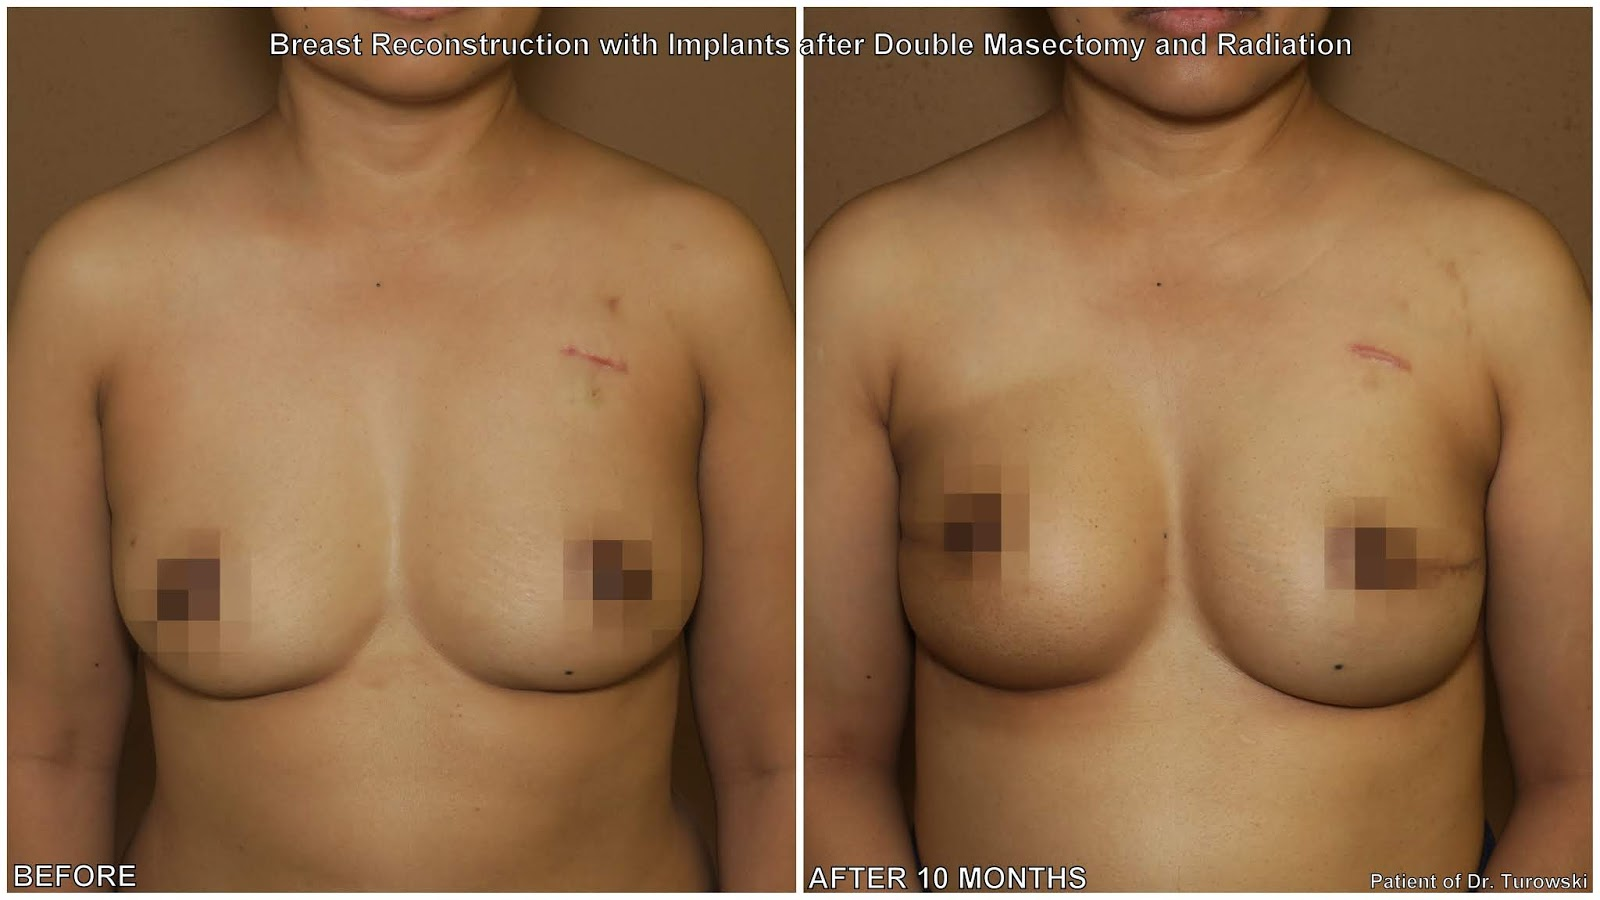 Seems brilliant breast reconstruction after radiation